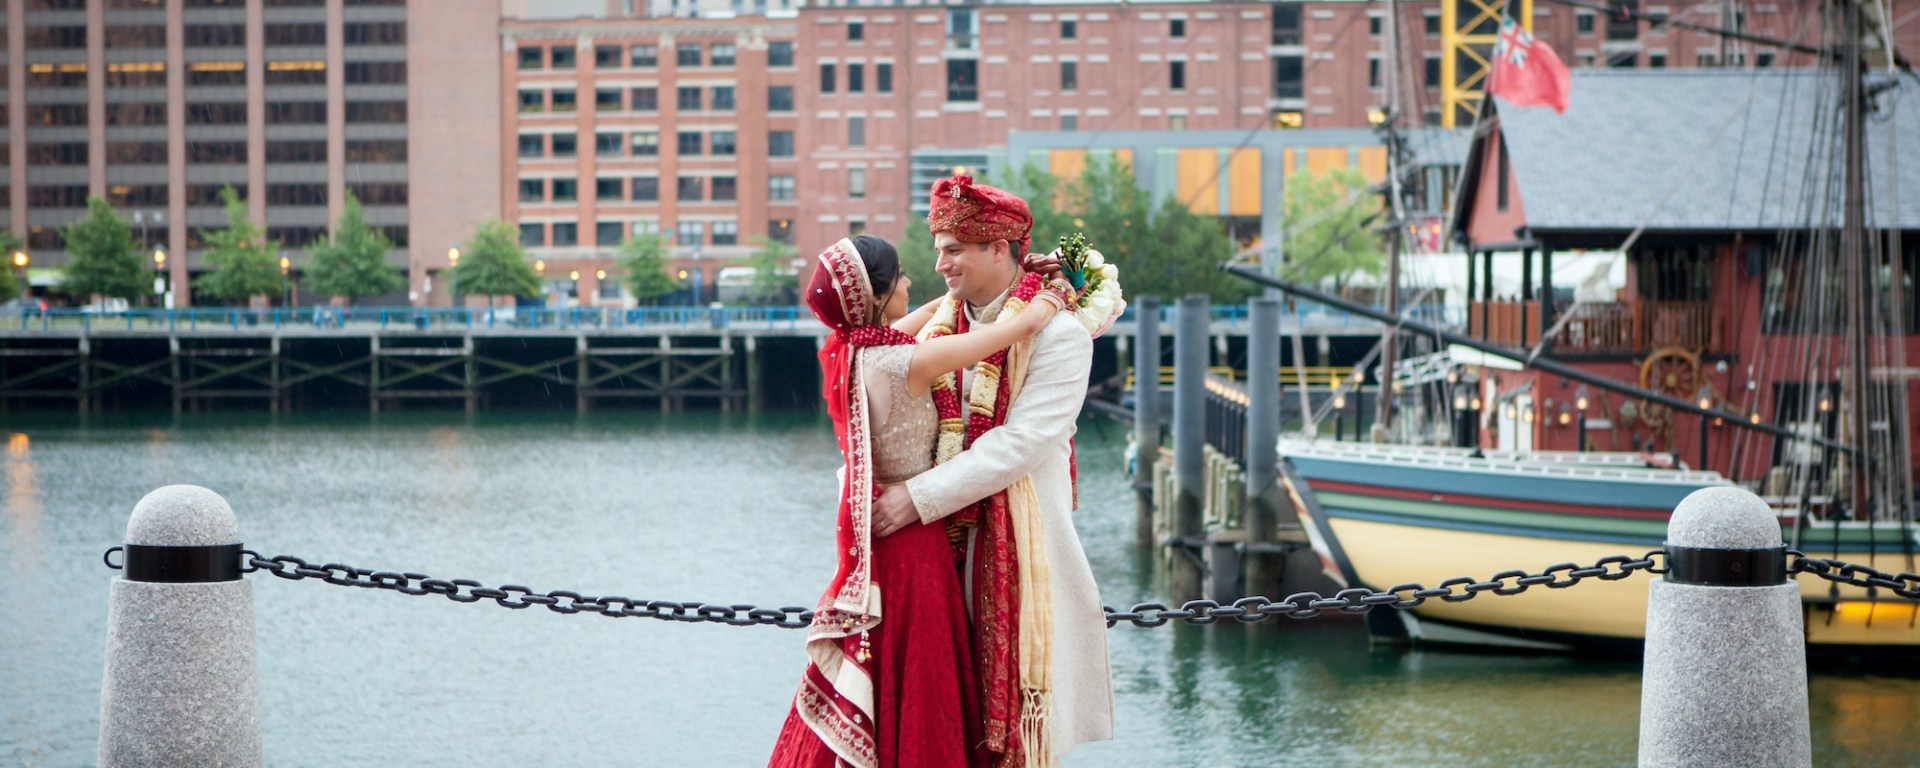 Indian wedding at the InterContinental Boston